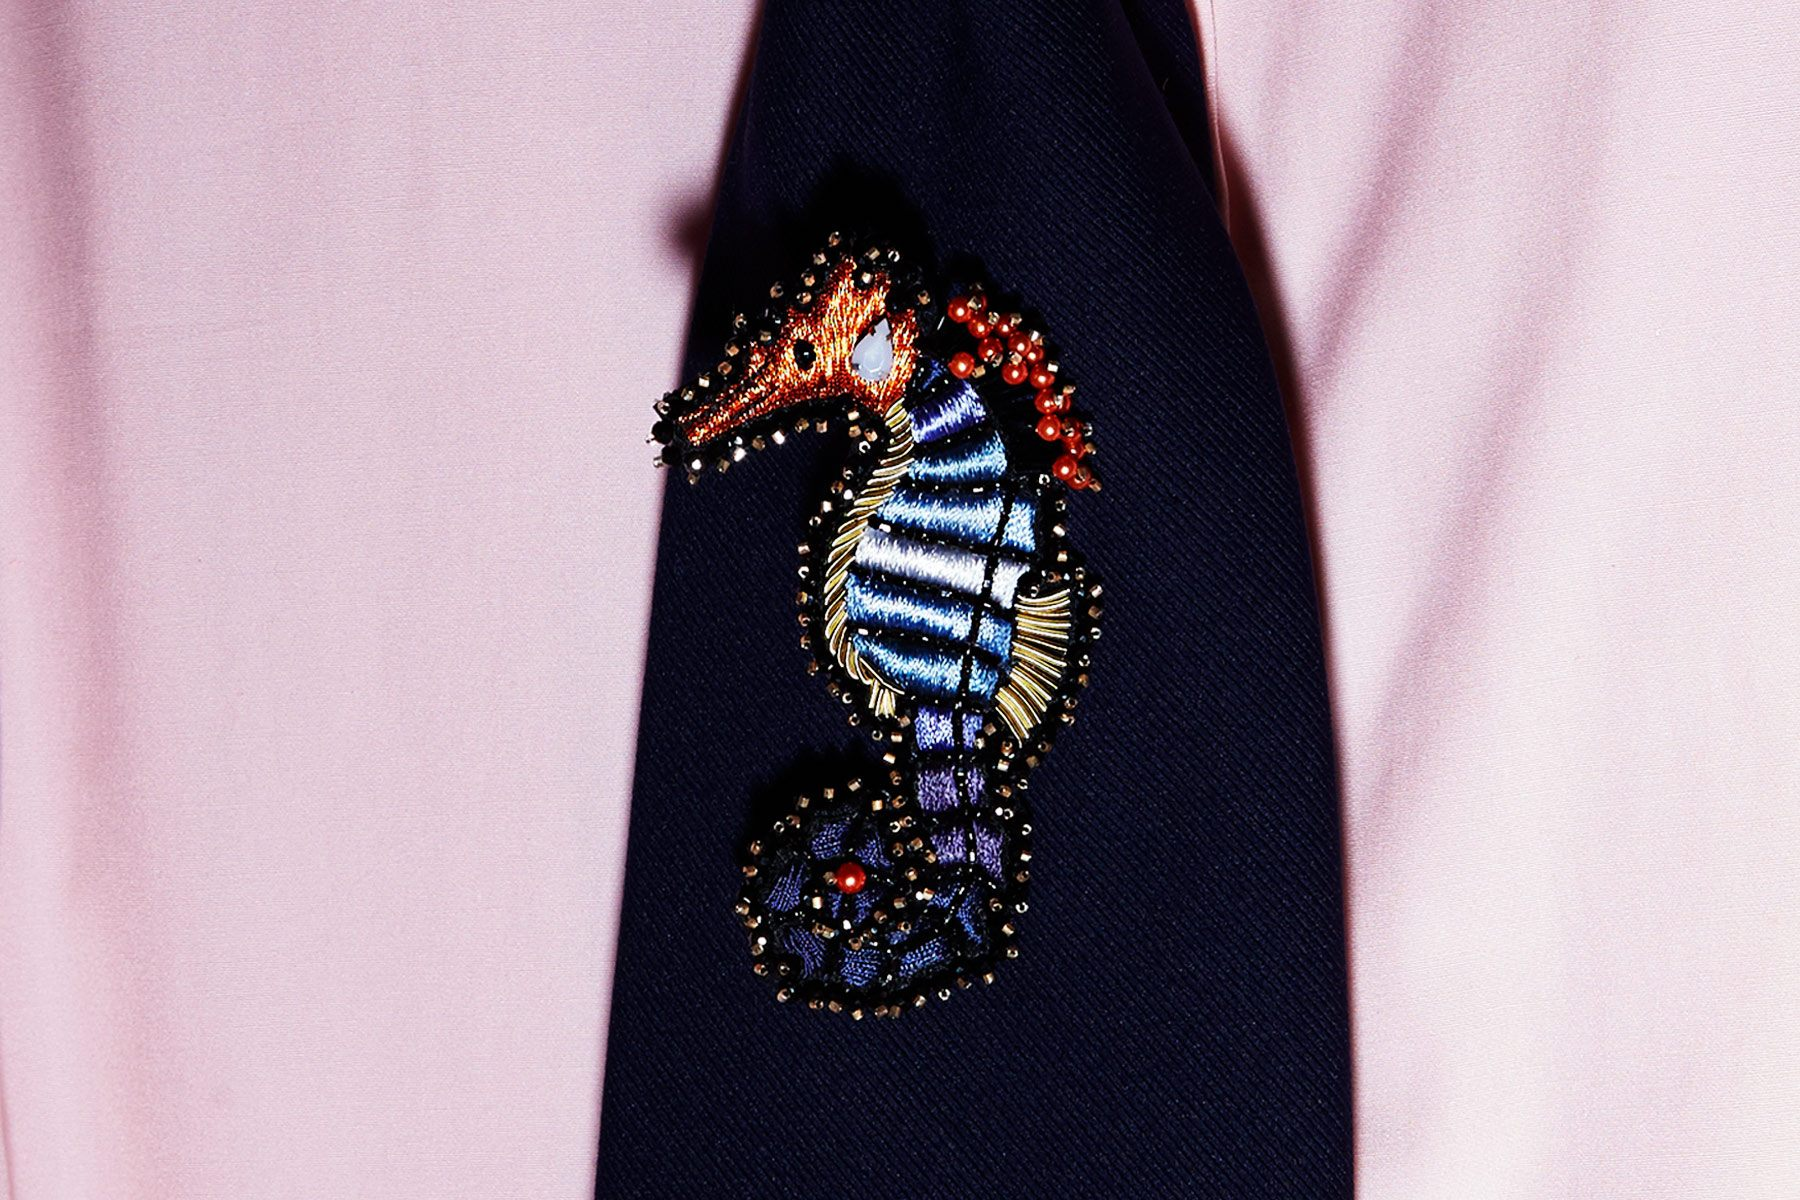 Close-up of a seahorse embroidery on a tie photographed backstage at David Hart for Spring/Summer 2019.